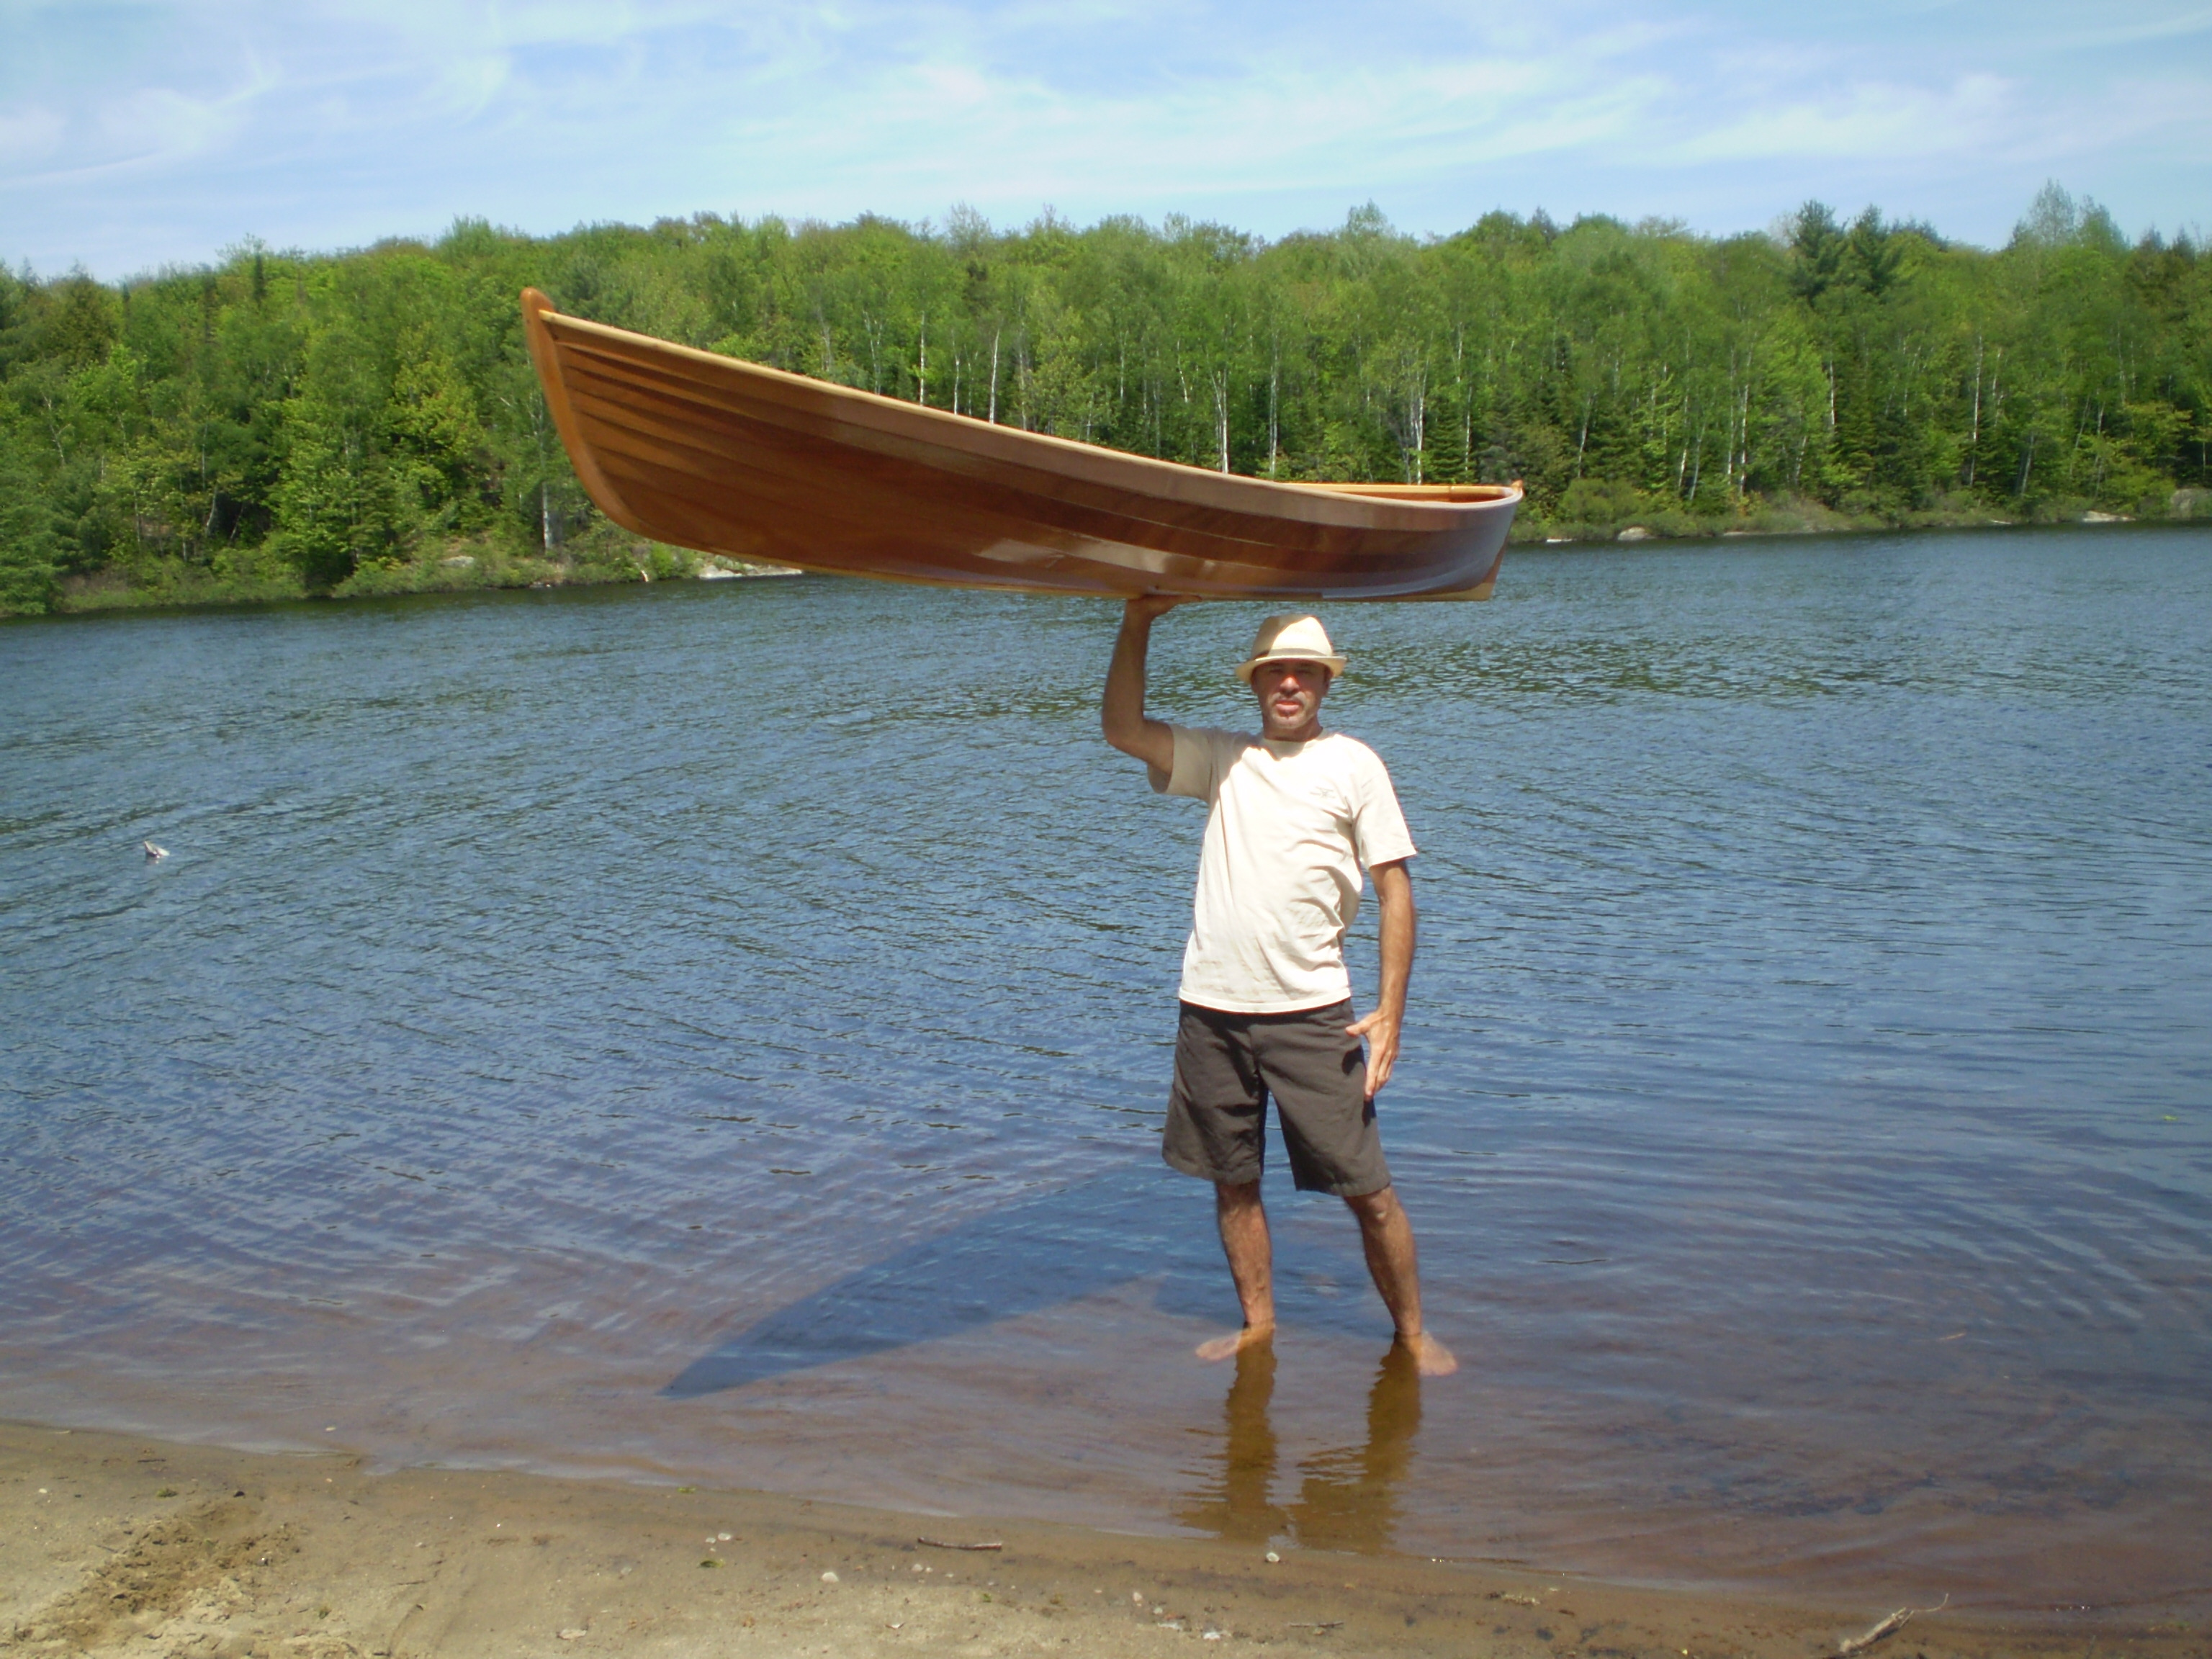 Wood Canoes For Sale http://harwoodwatercraft.com/boats-for-sale/wee ...